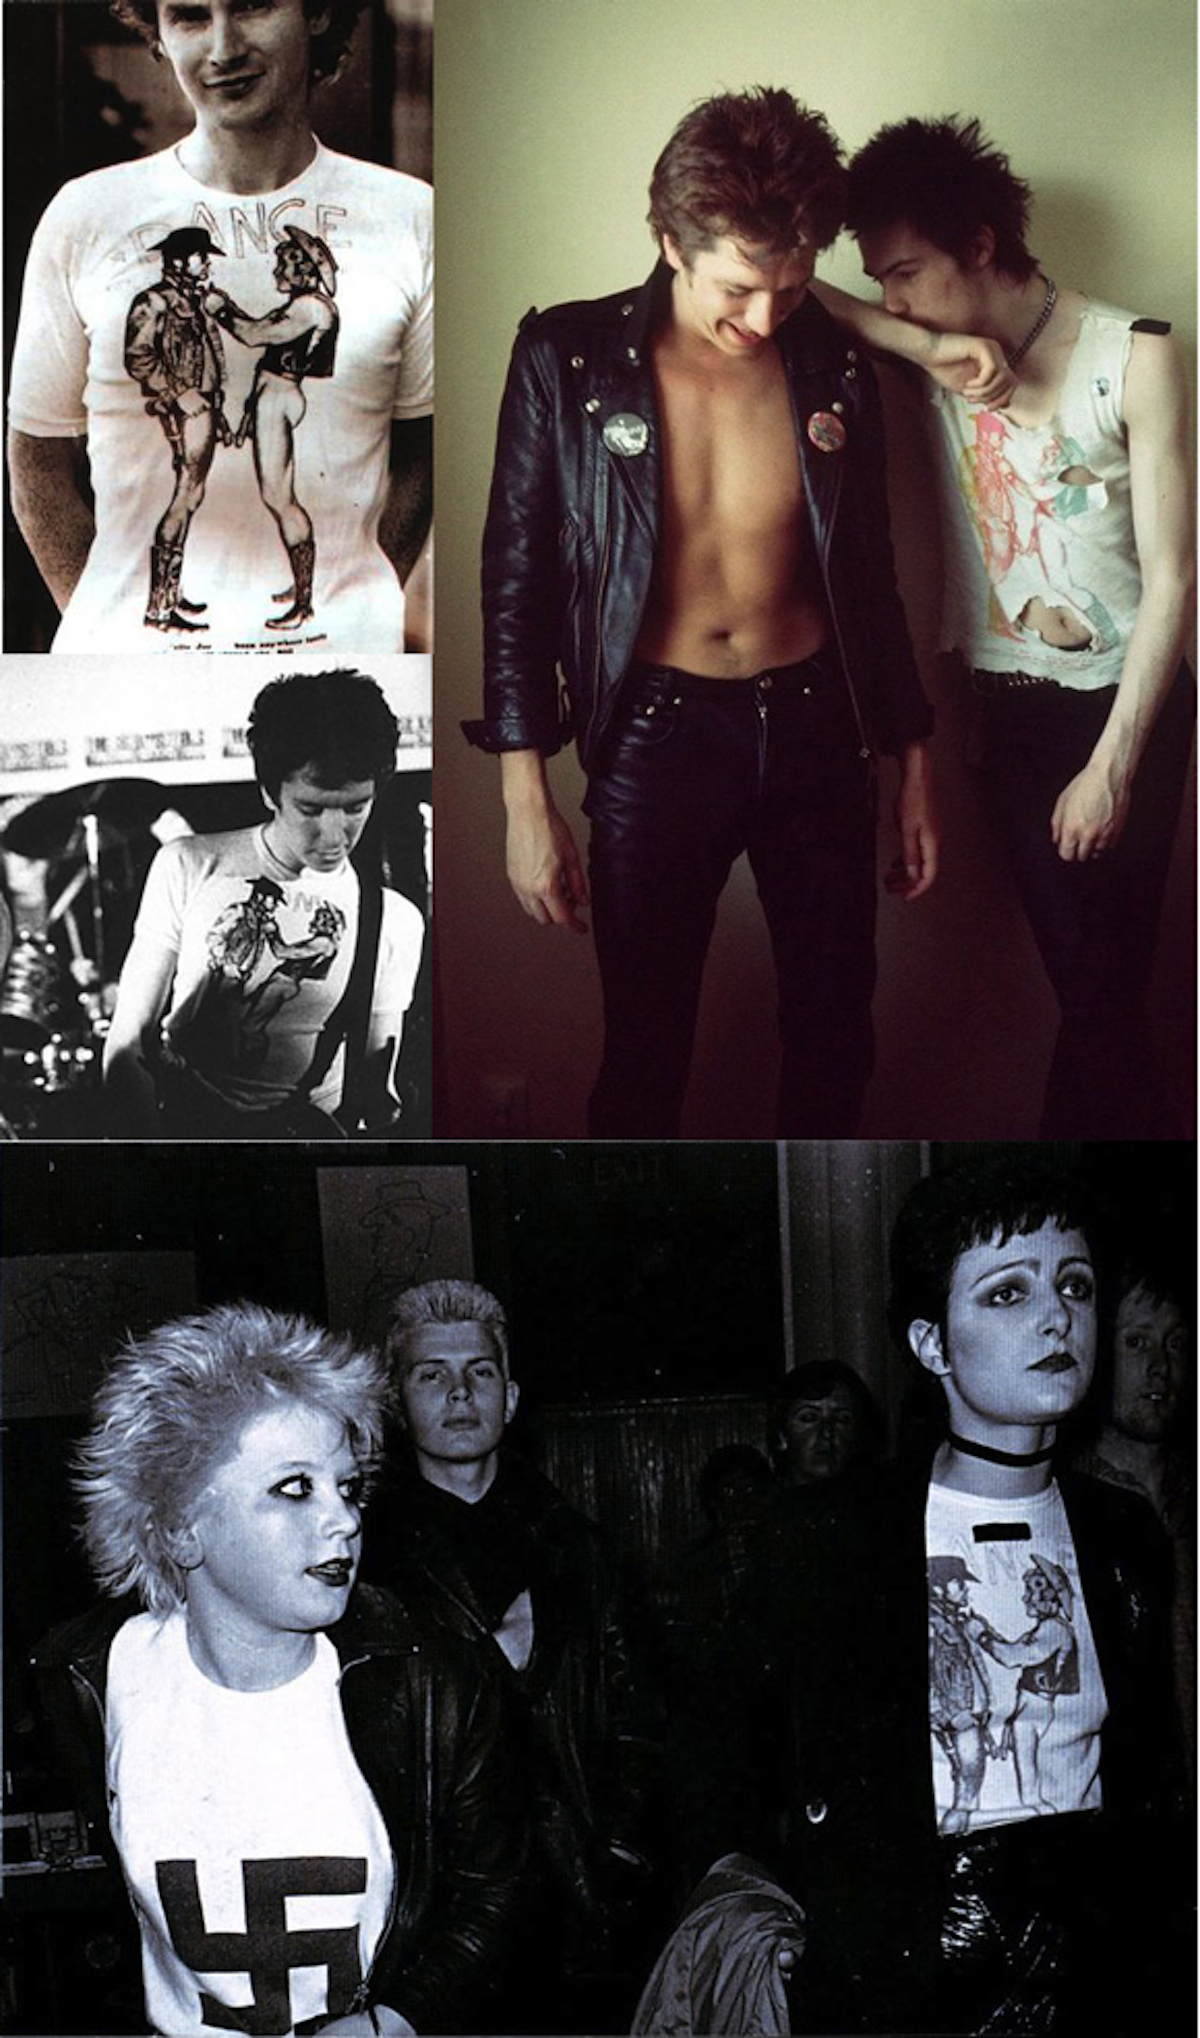 Wearing their Cowboys (clockwise from top left): McLaren 1975, Sid Vicious 1977, Siouxsie 1976, Steve Jones 1975. Photographs: Bob Gruen; Dennis Morris; Ray Stevenson; Mick Rock.